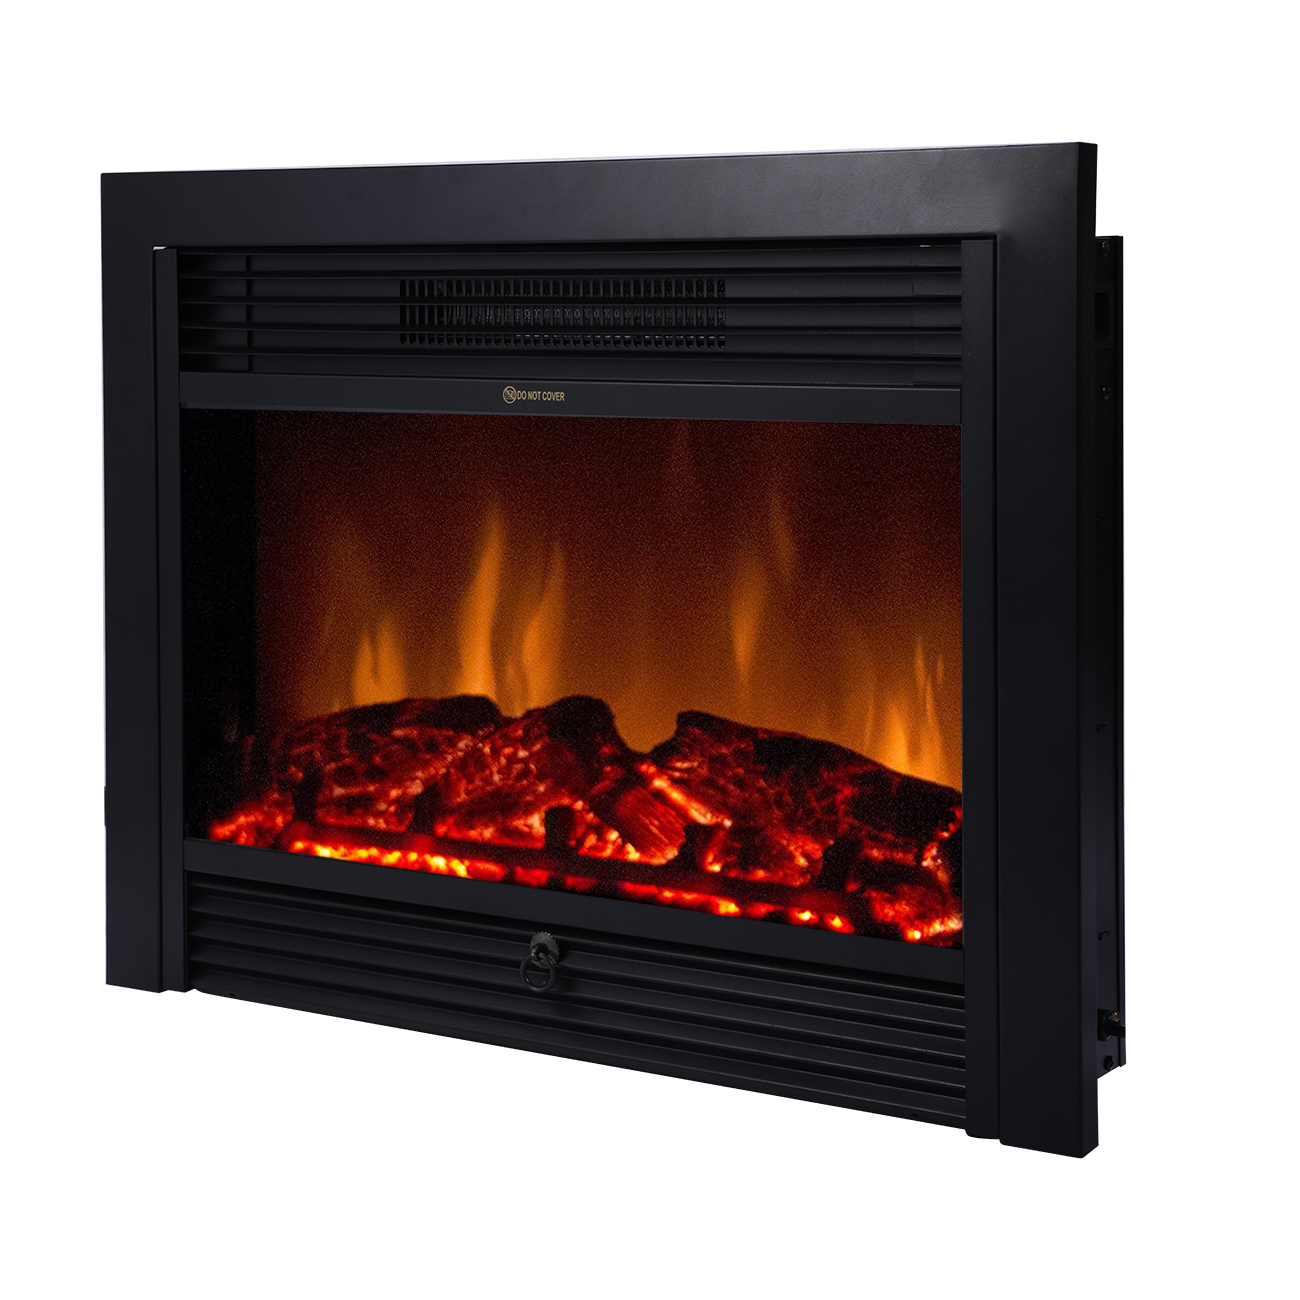 """Beamnova 28.5"""" inch Electric Wall Mount Fireplace Heater with Remote Control Embedded Fireplace"""